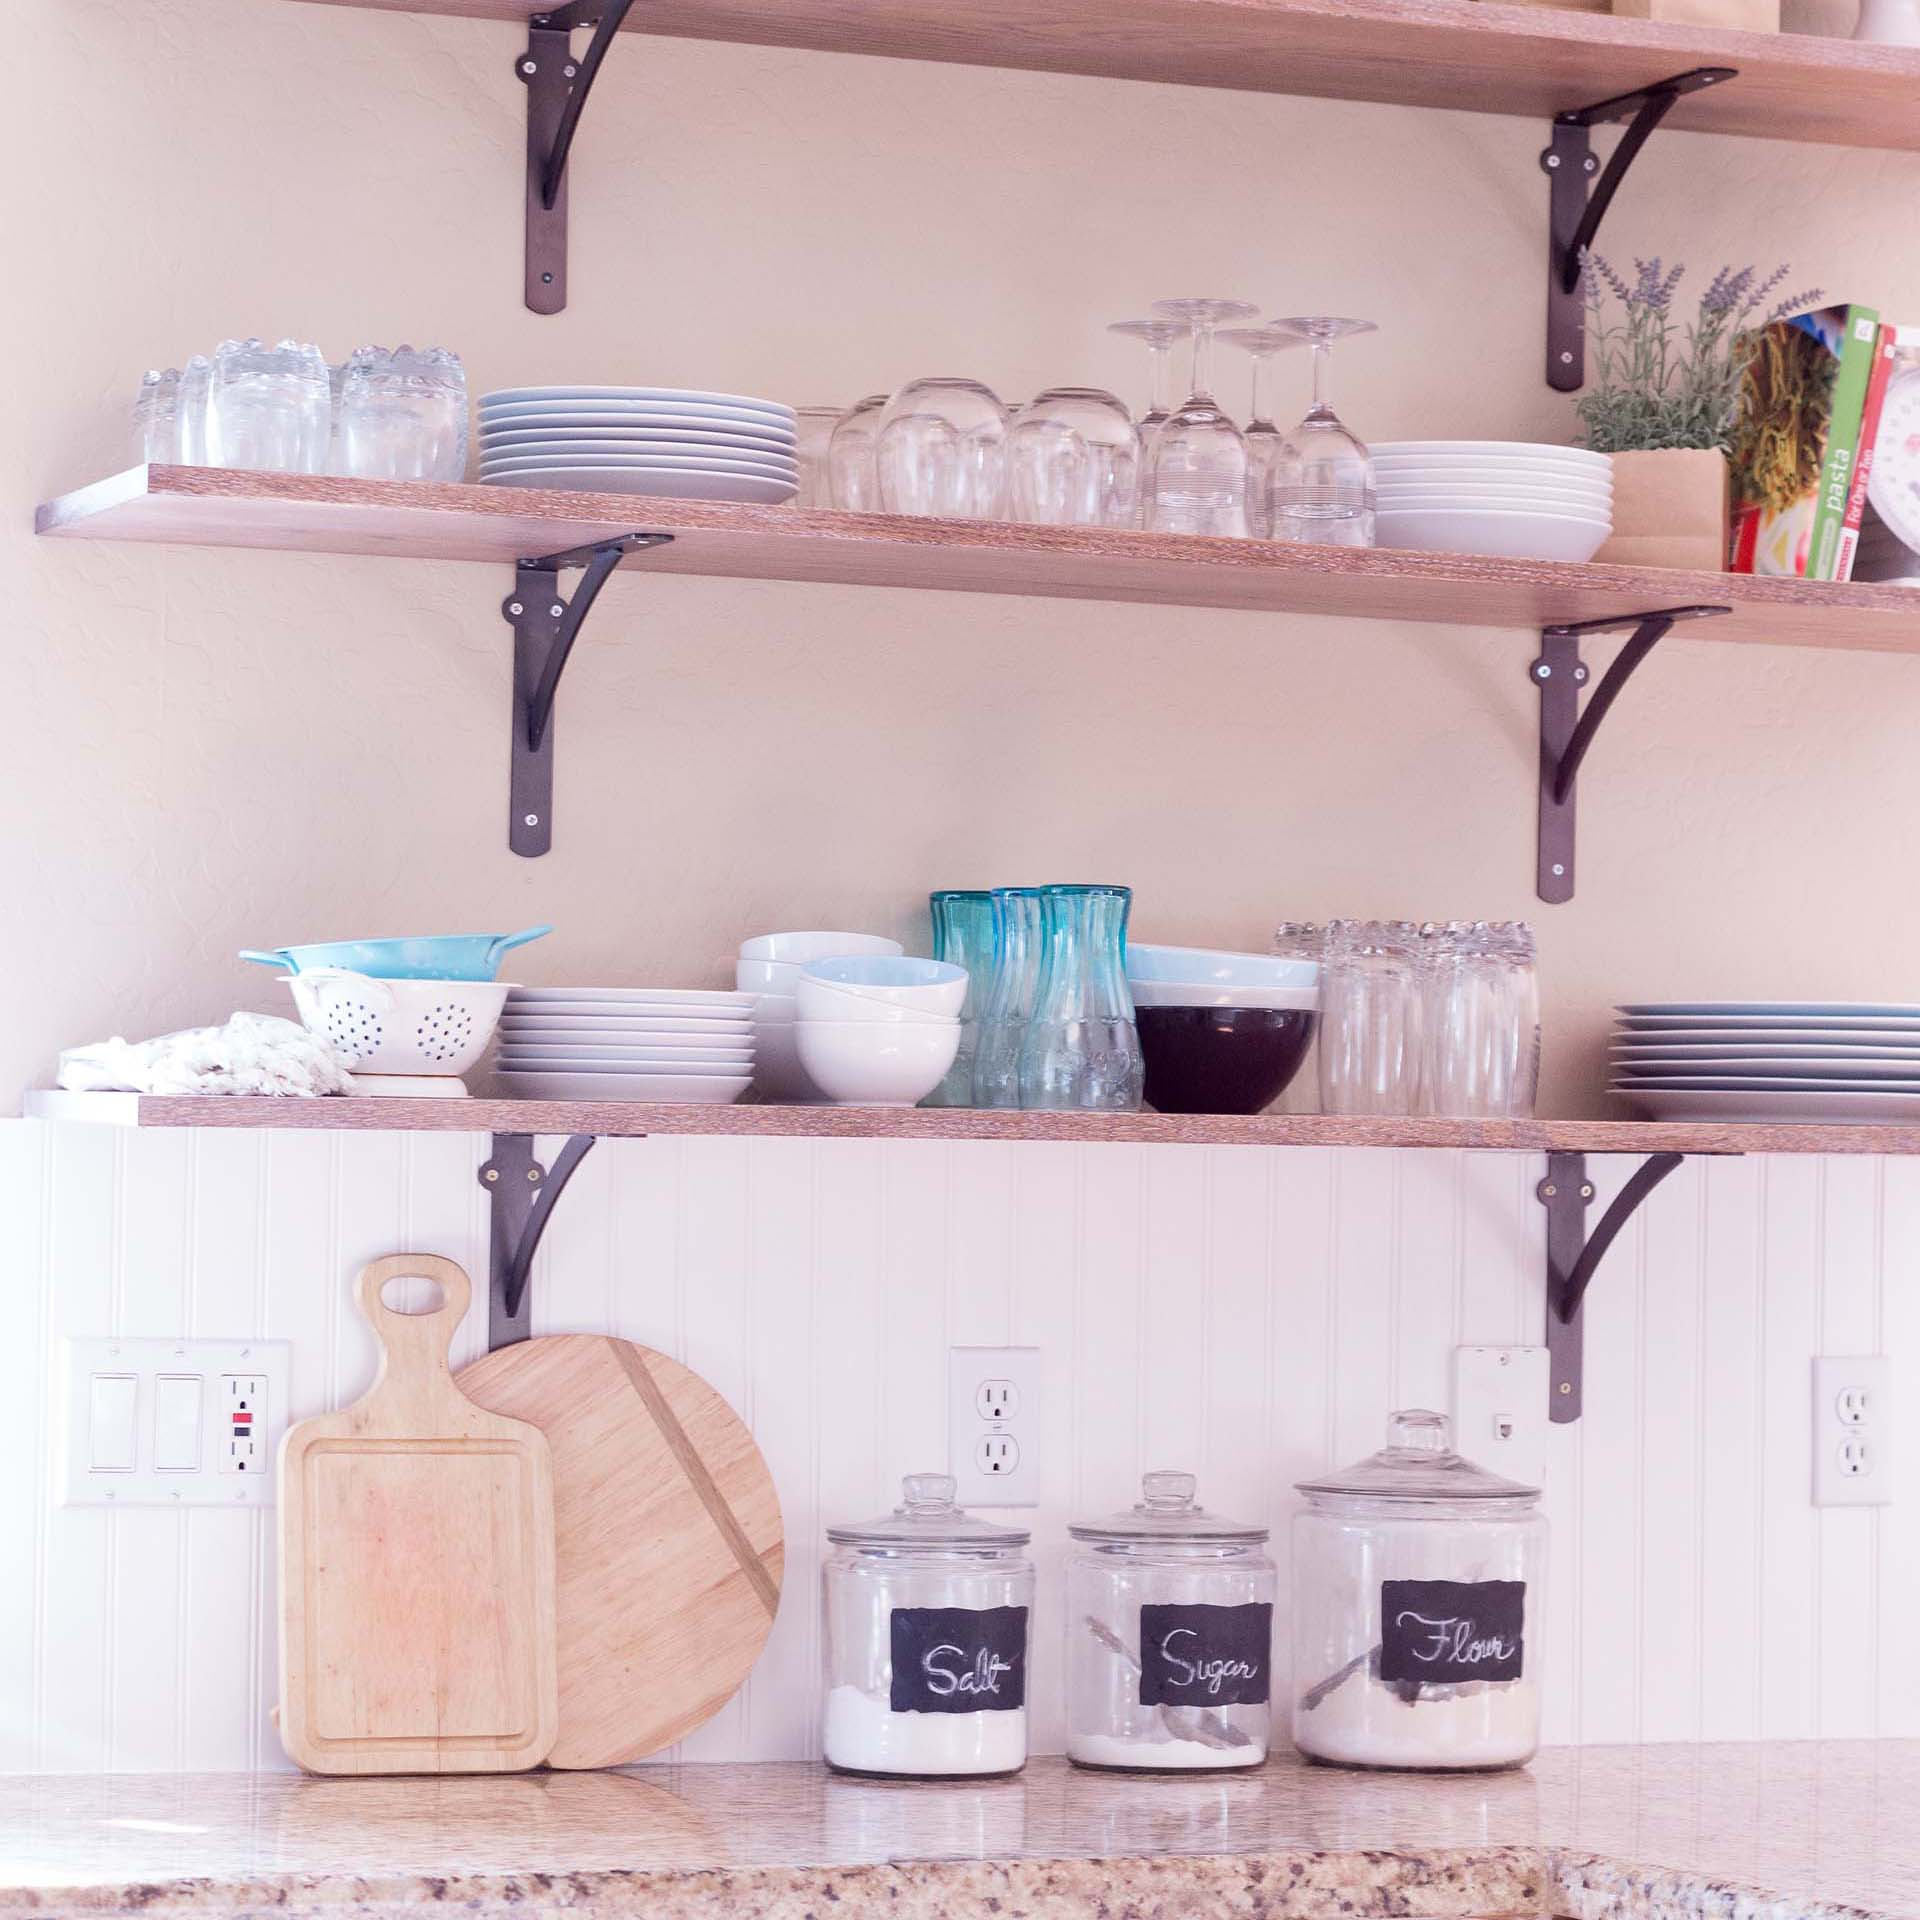 Upper Kitchen Cabinet Decorations: 6 Creative Storage Solutions For A Kitchen With No Upper